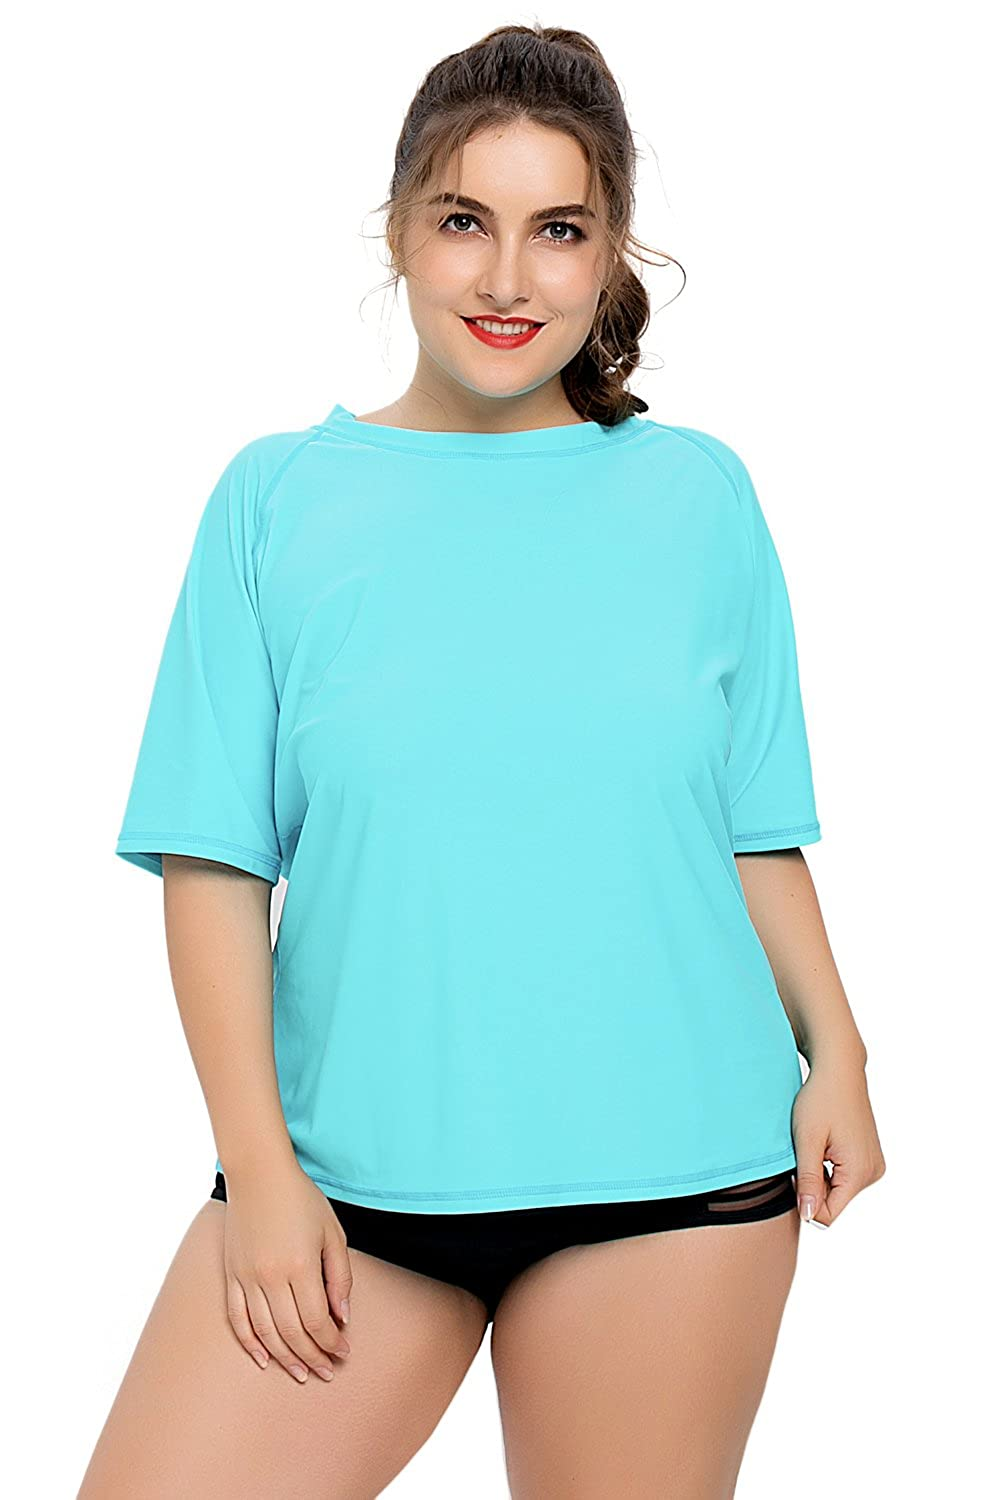 44d11f896fc71 UPF 50+ rashguard top protects sensitive skin from sun burn and harmful  rays. Short sleeve rash guard swimsuit with crew neck for more body  coverage.